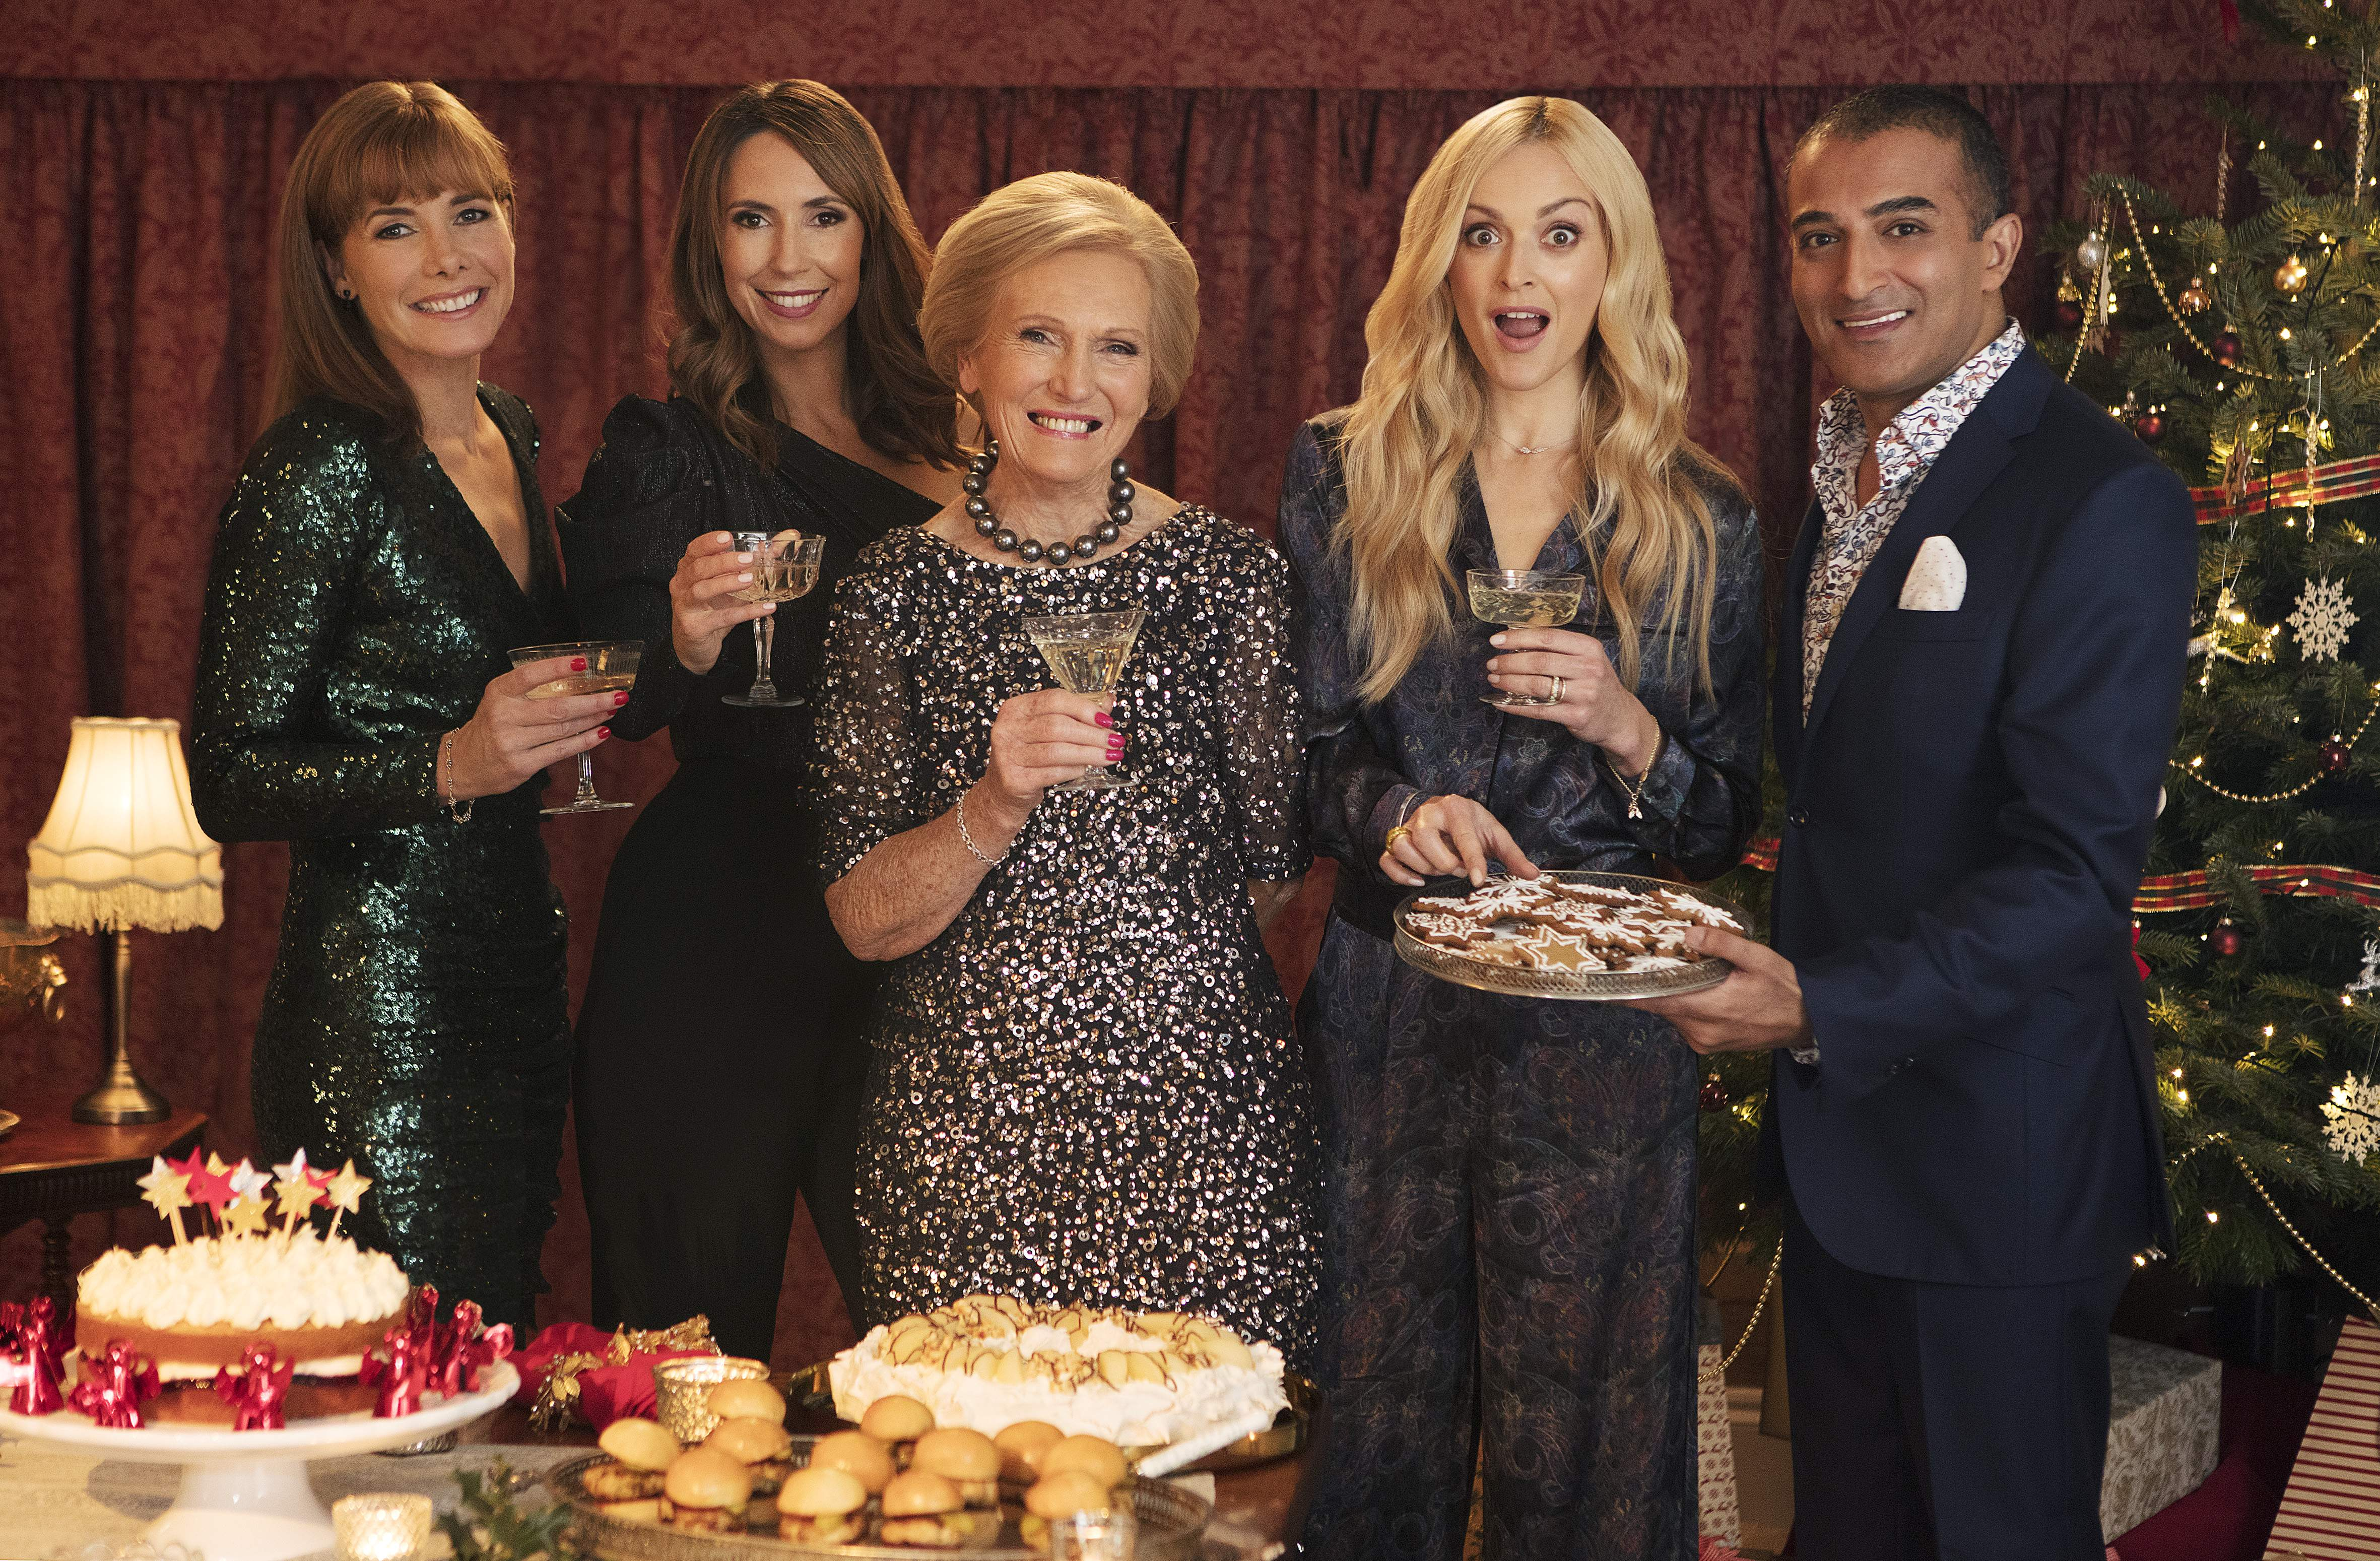 Mary Berrys Christmas Party 2020 Mary Berry's Christmas Party (2017)   IMDb